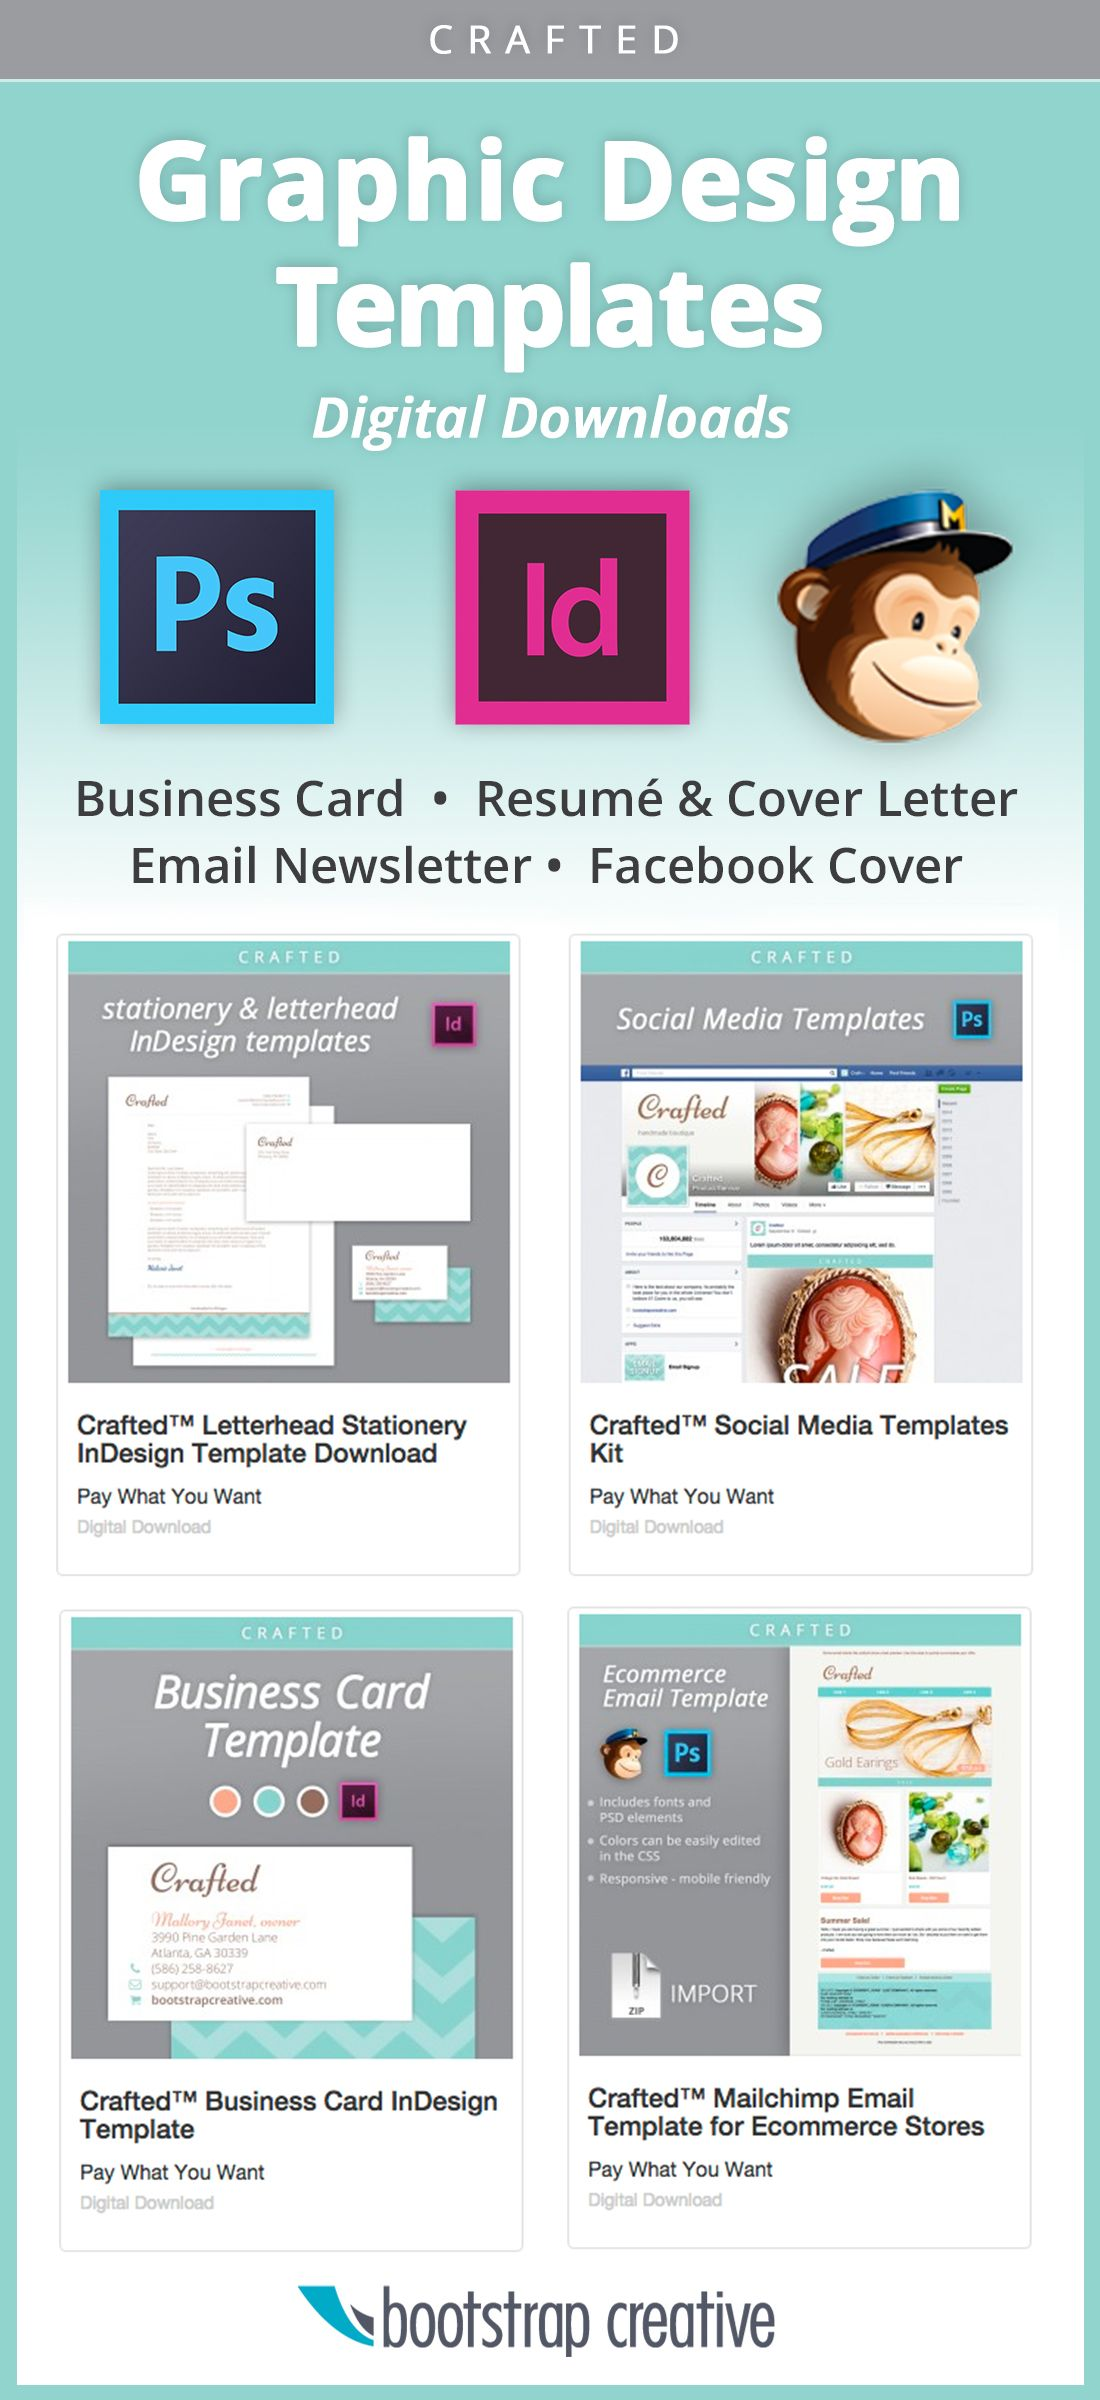 Email newsletter template business card template social media email newsletter template business card template social media templates business letterhead and friedricerecipe Choice Image